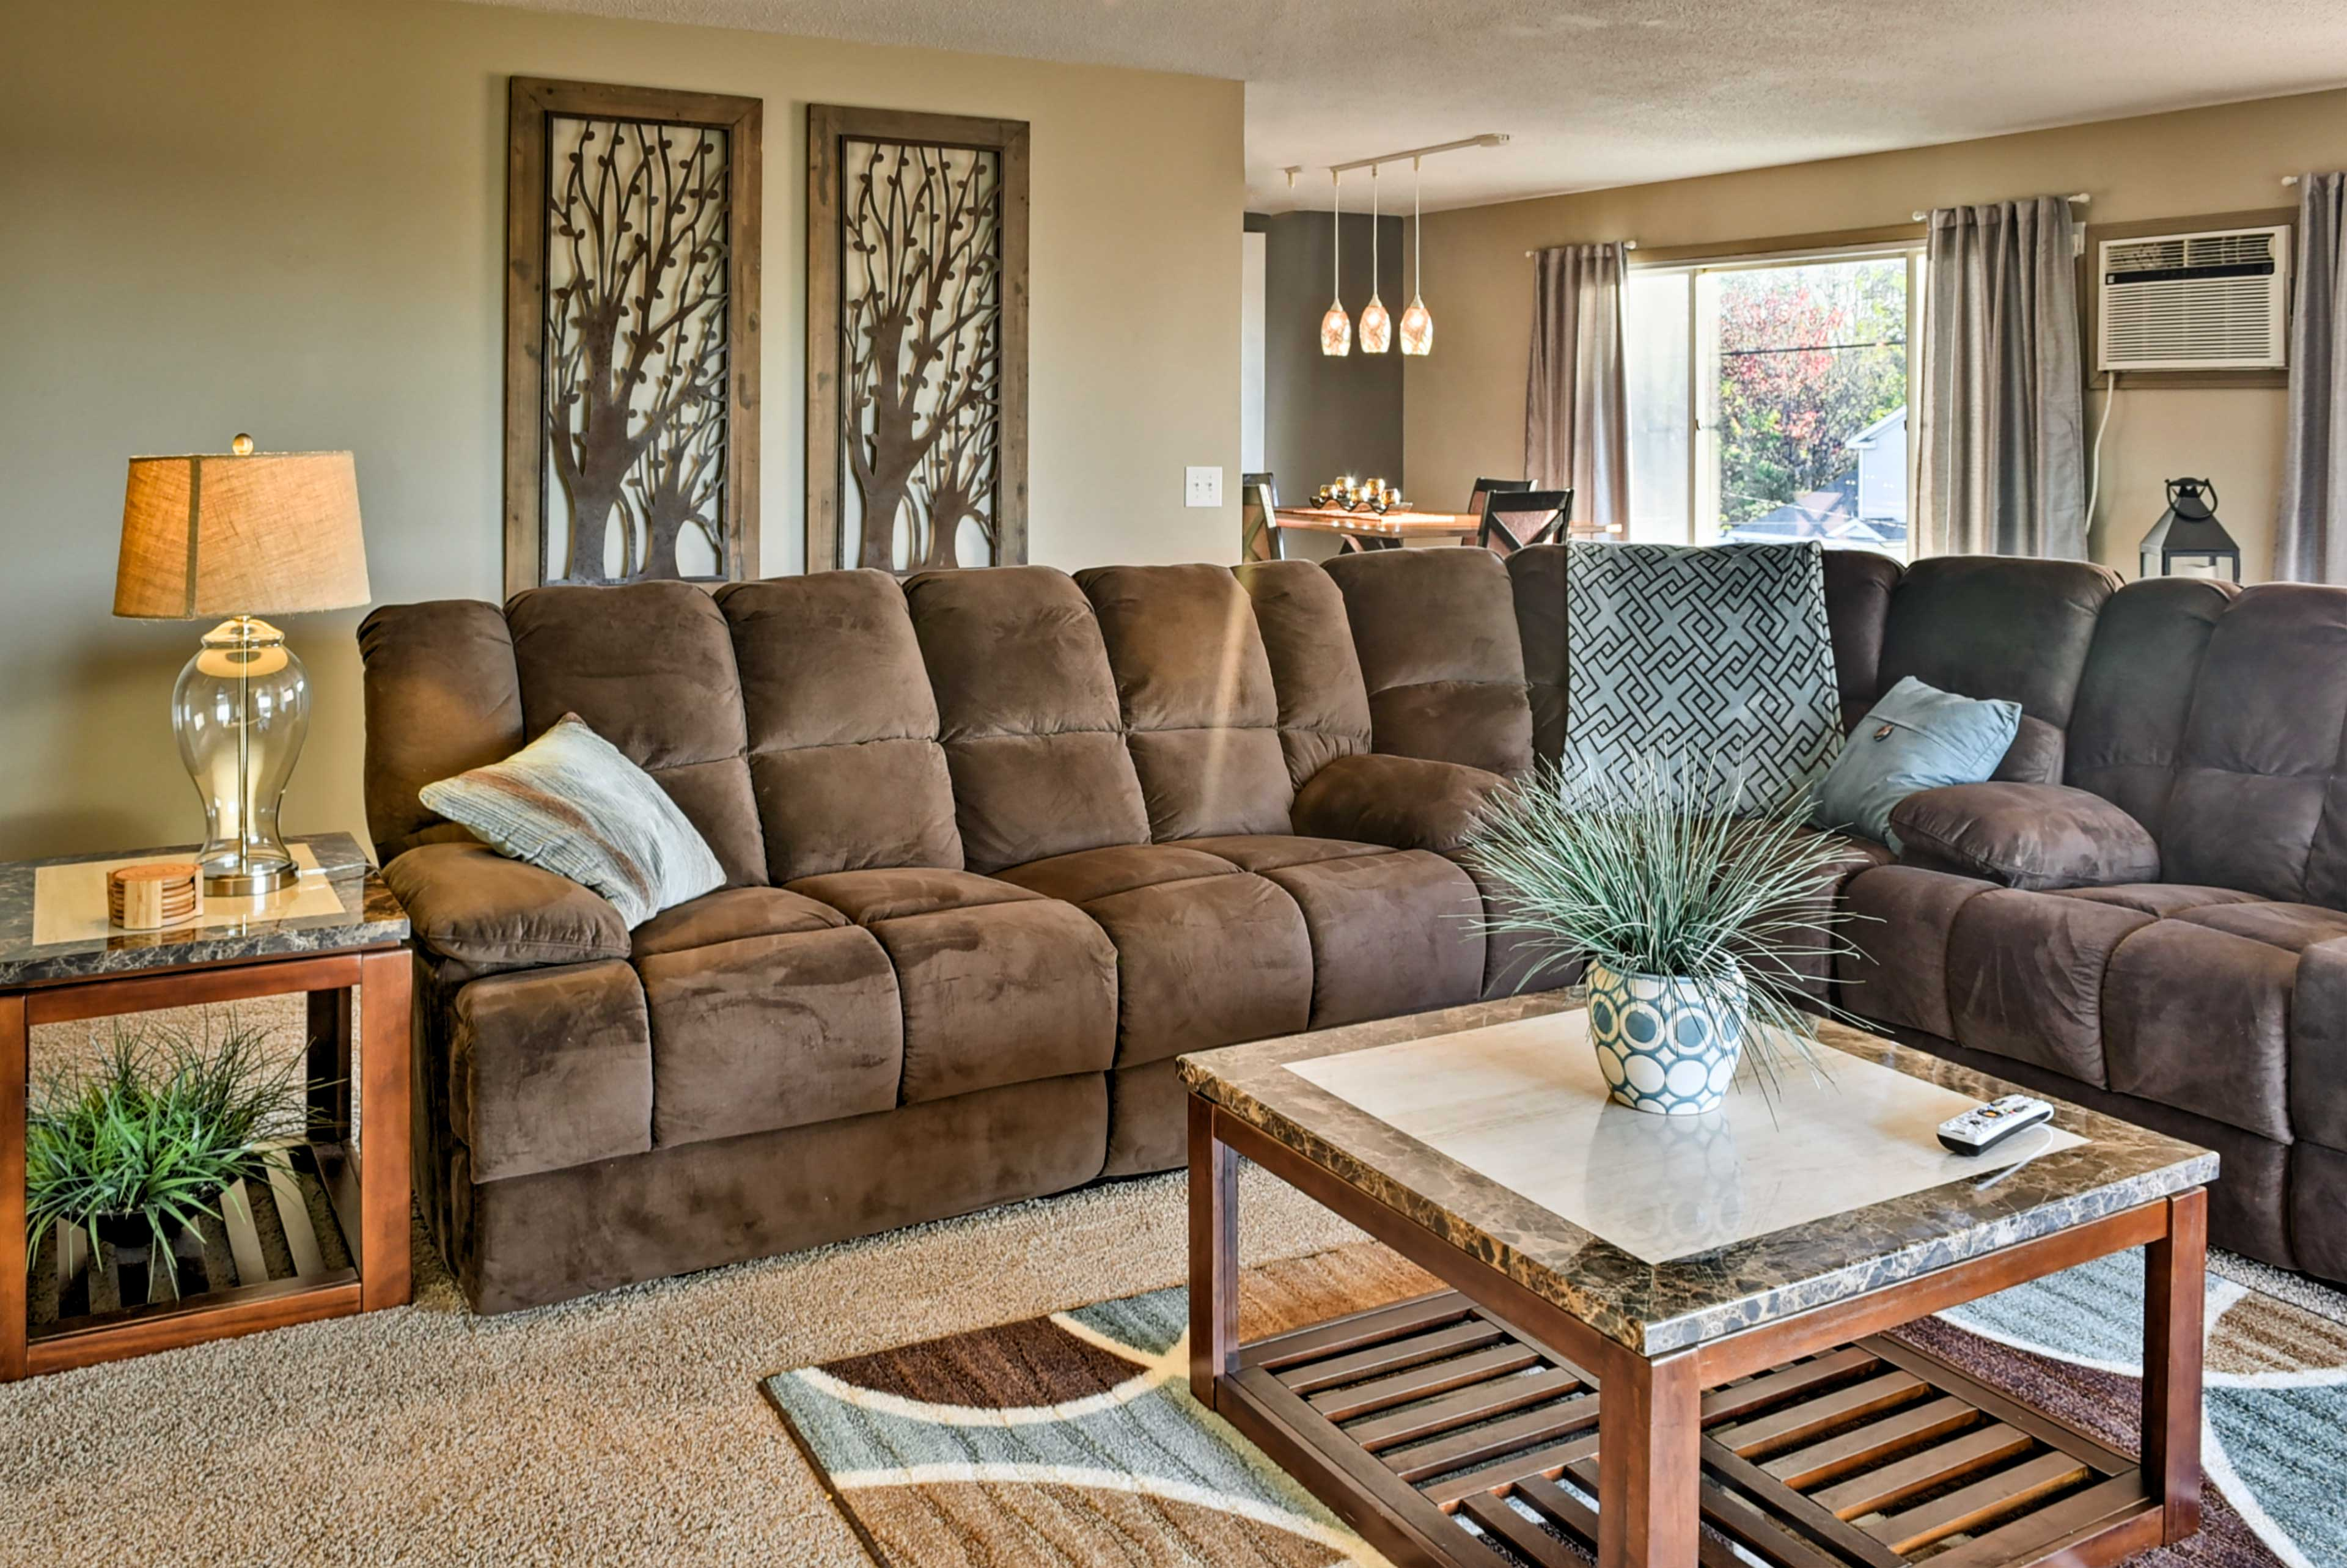 East Tawas Vacation Rental Apartment | 3BR | 2BA | 2 Stories | 1,800 Sq Ft